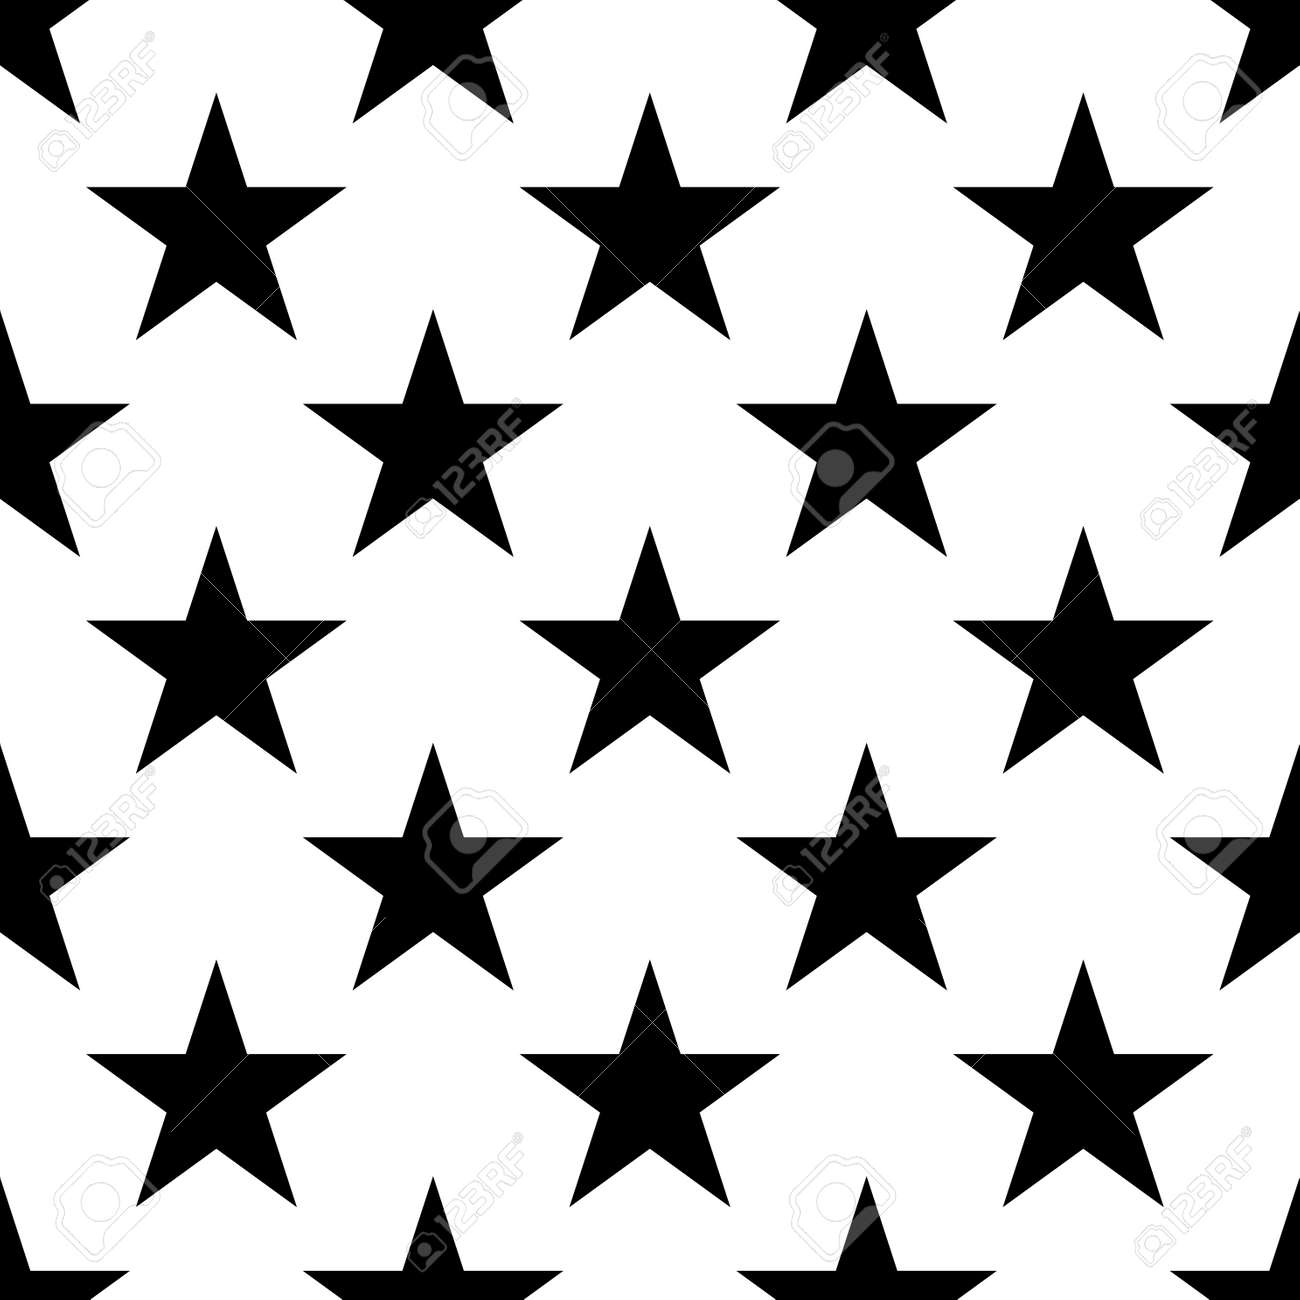 Stars Seamless Pattern Black And White Retro Background Elements Royalty Free Cliparts Vectors And Stock Illustration Image 60411118